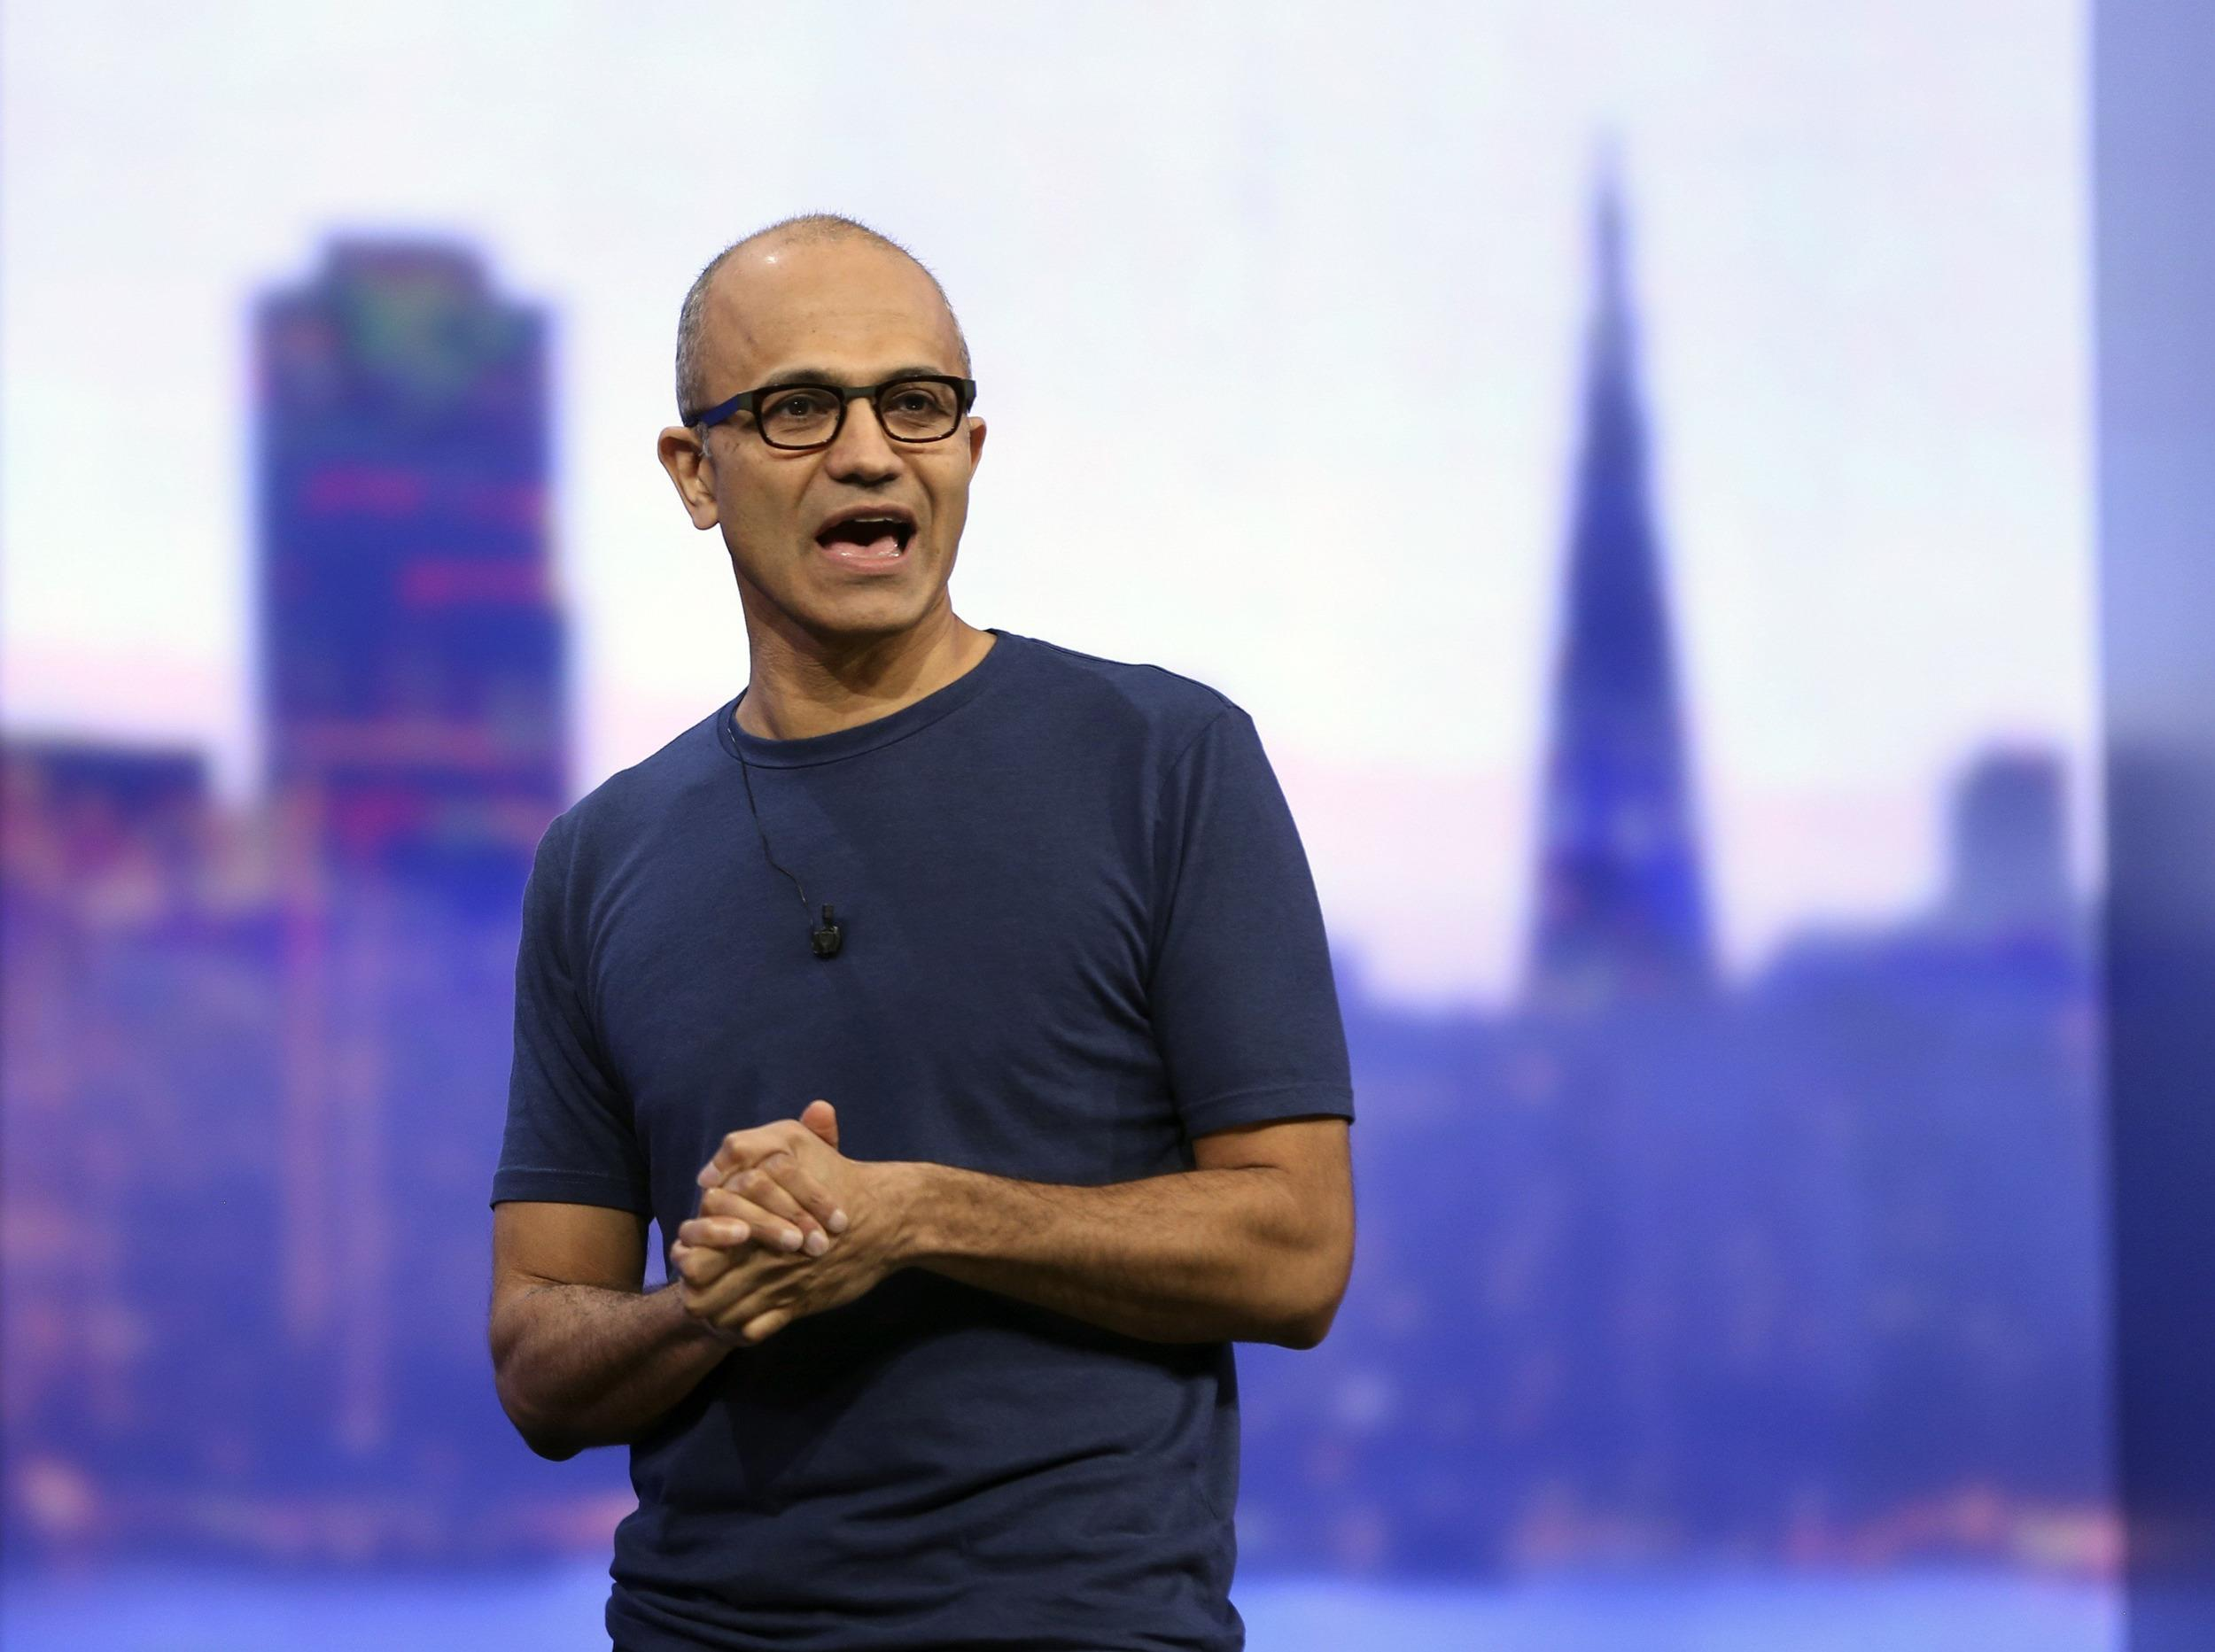 Is Microsoft CEO Satya Nadella the corporate reincarnation of Bill Gates? The Microsoft faithful sure hope so.